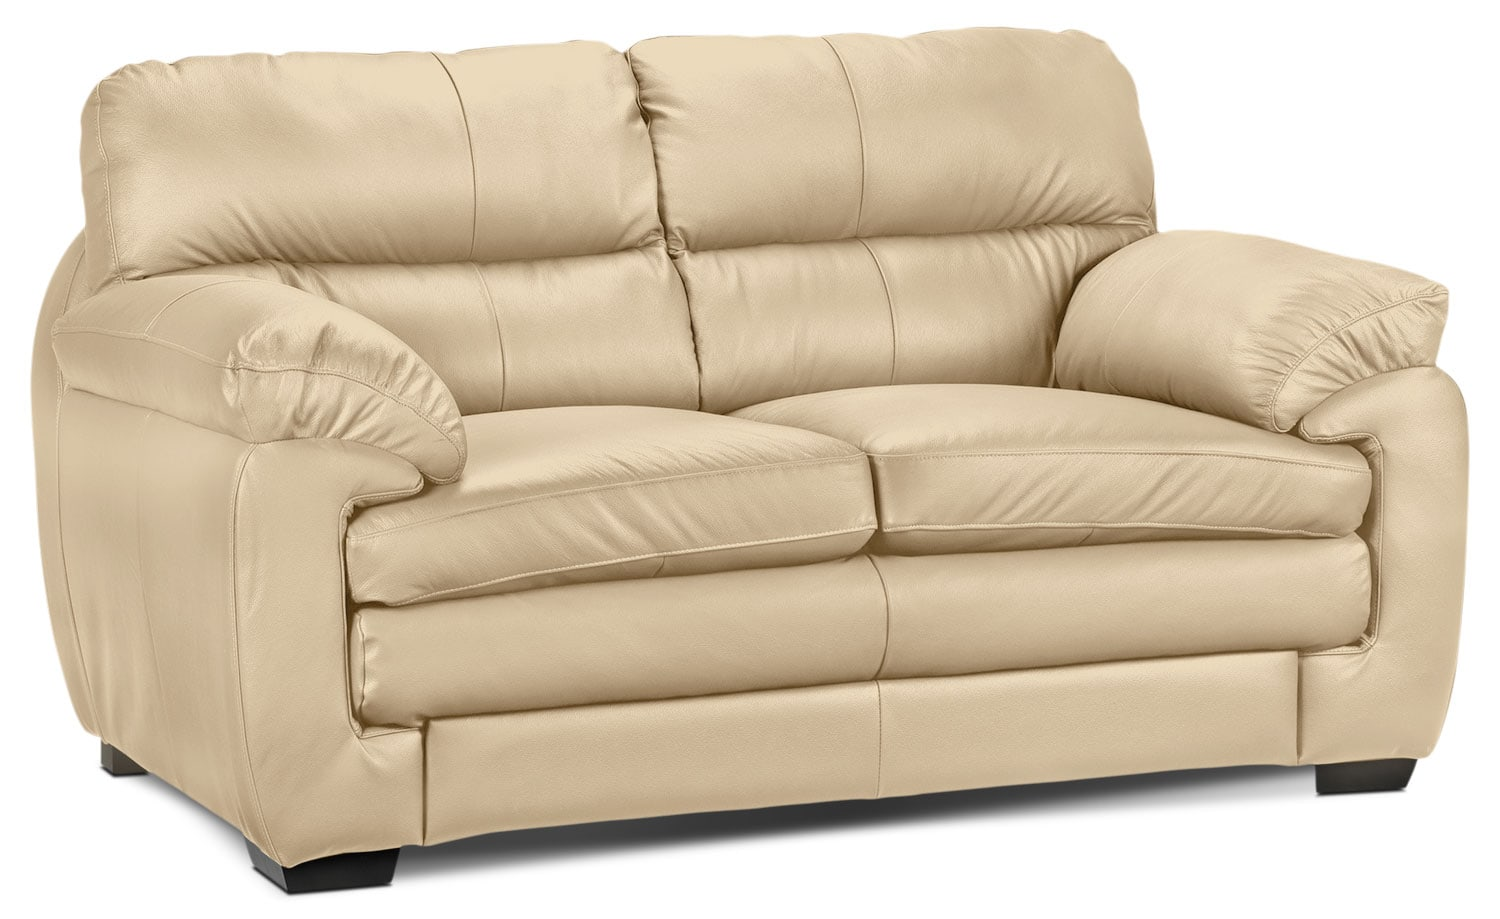 Cambria Loveseat - Seashell